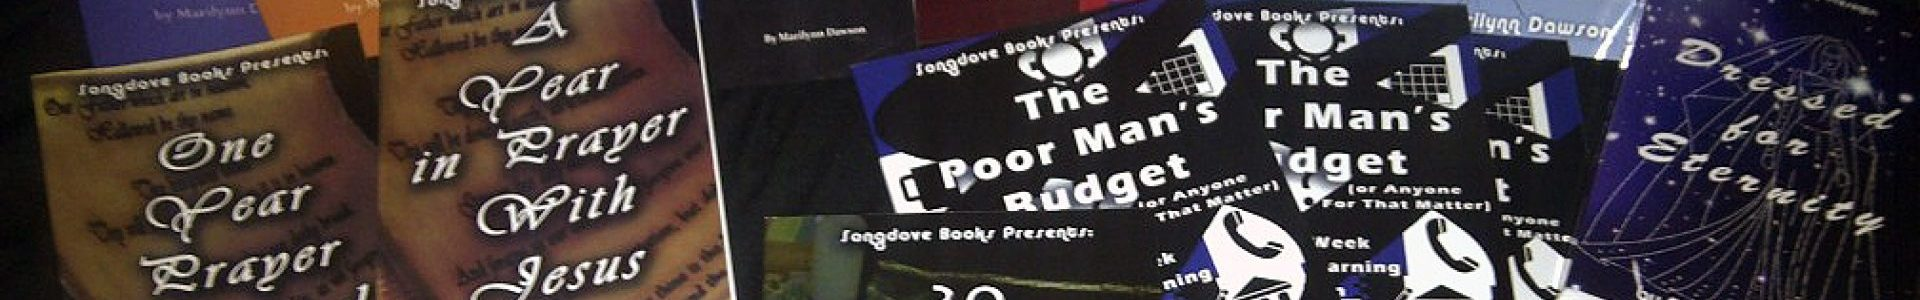 Songdove Books Presents: